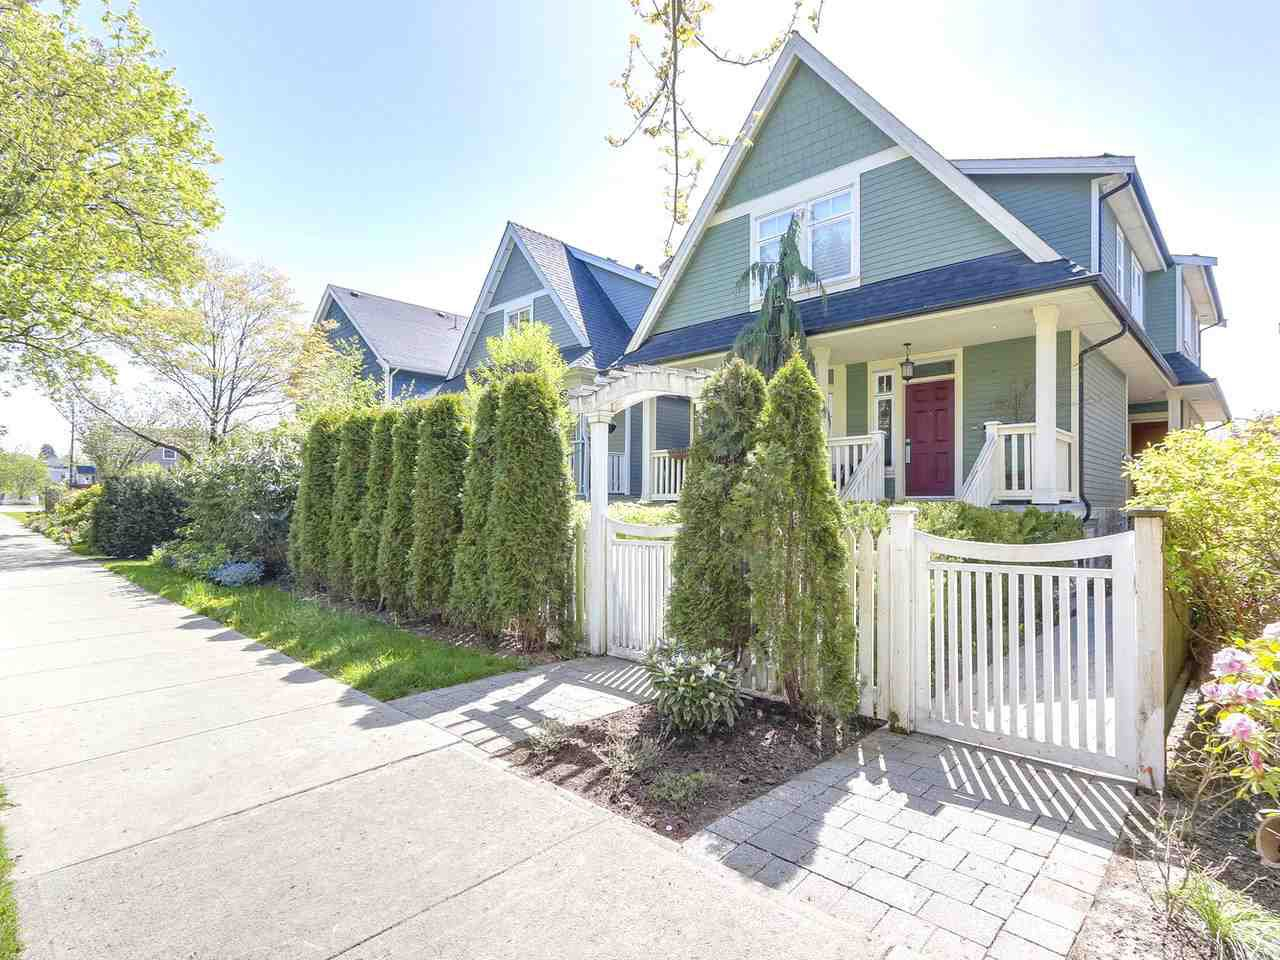 Main Photo: 1850 E 8TH AVENUE in Vancouver: Grandview VE House 1/2 Duplex for sale (Vancouver East)  : MLS®# R2276660